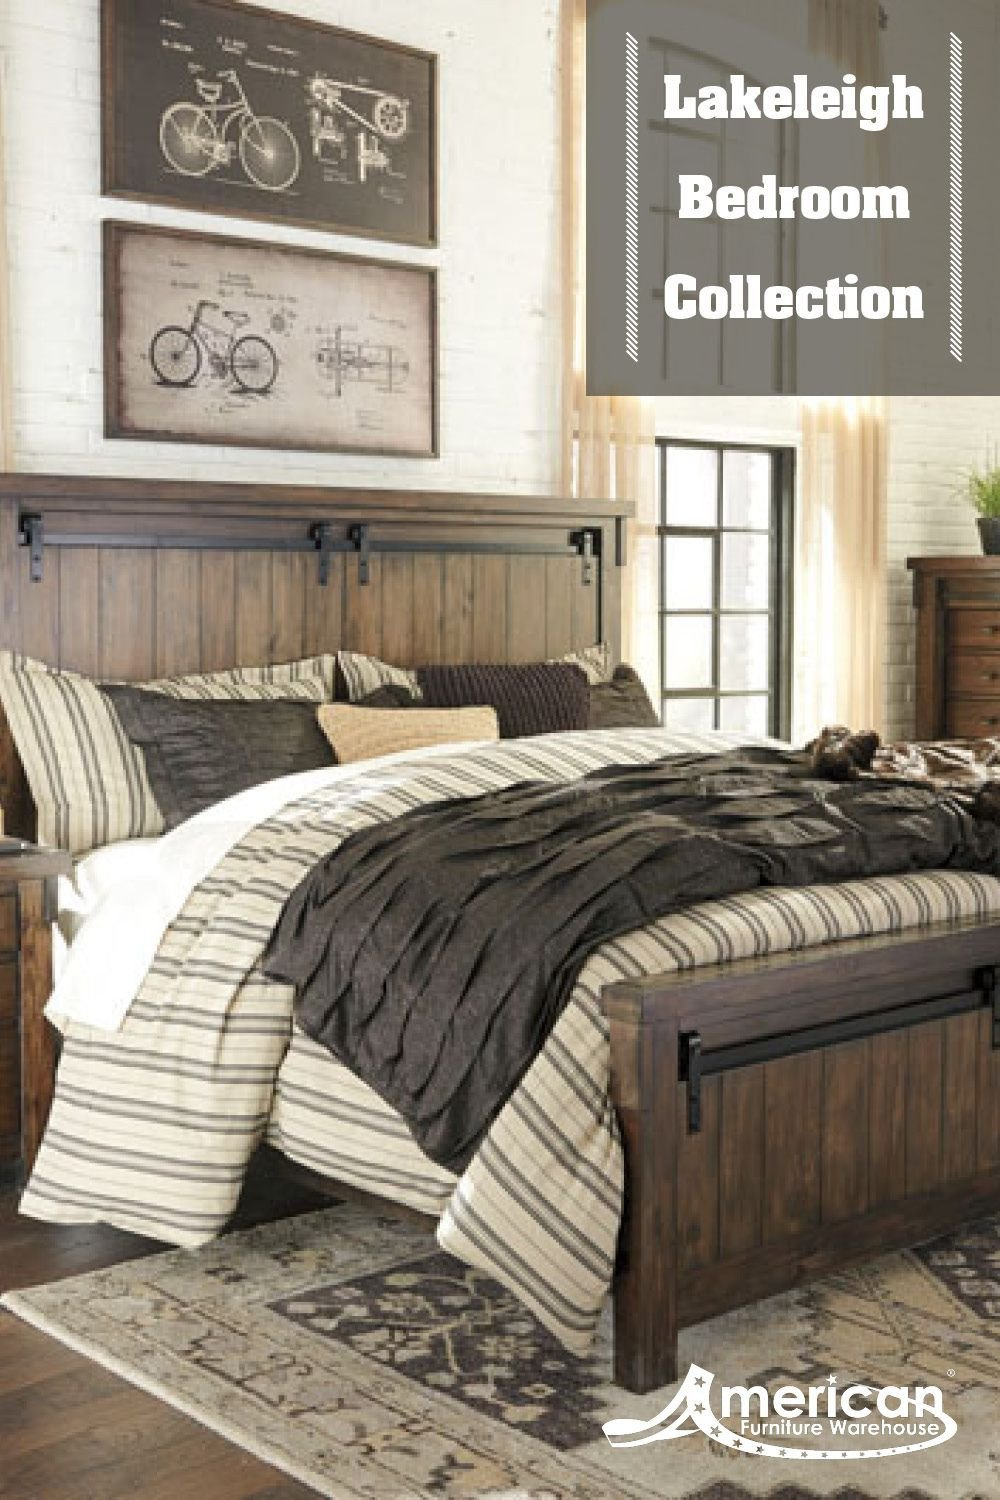 Ashley Furniture Bedroom Set Price Awesome Lakeleigh 5 Piece Bedroom Set